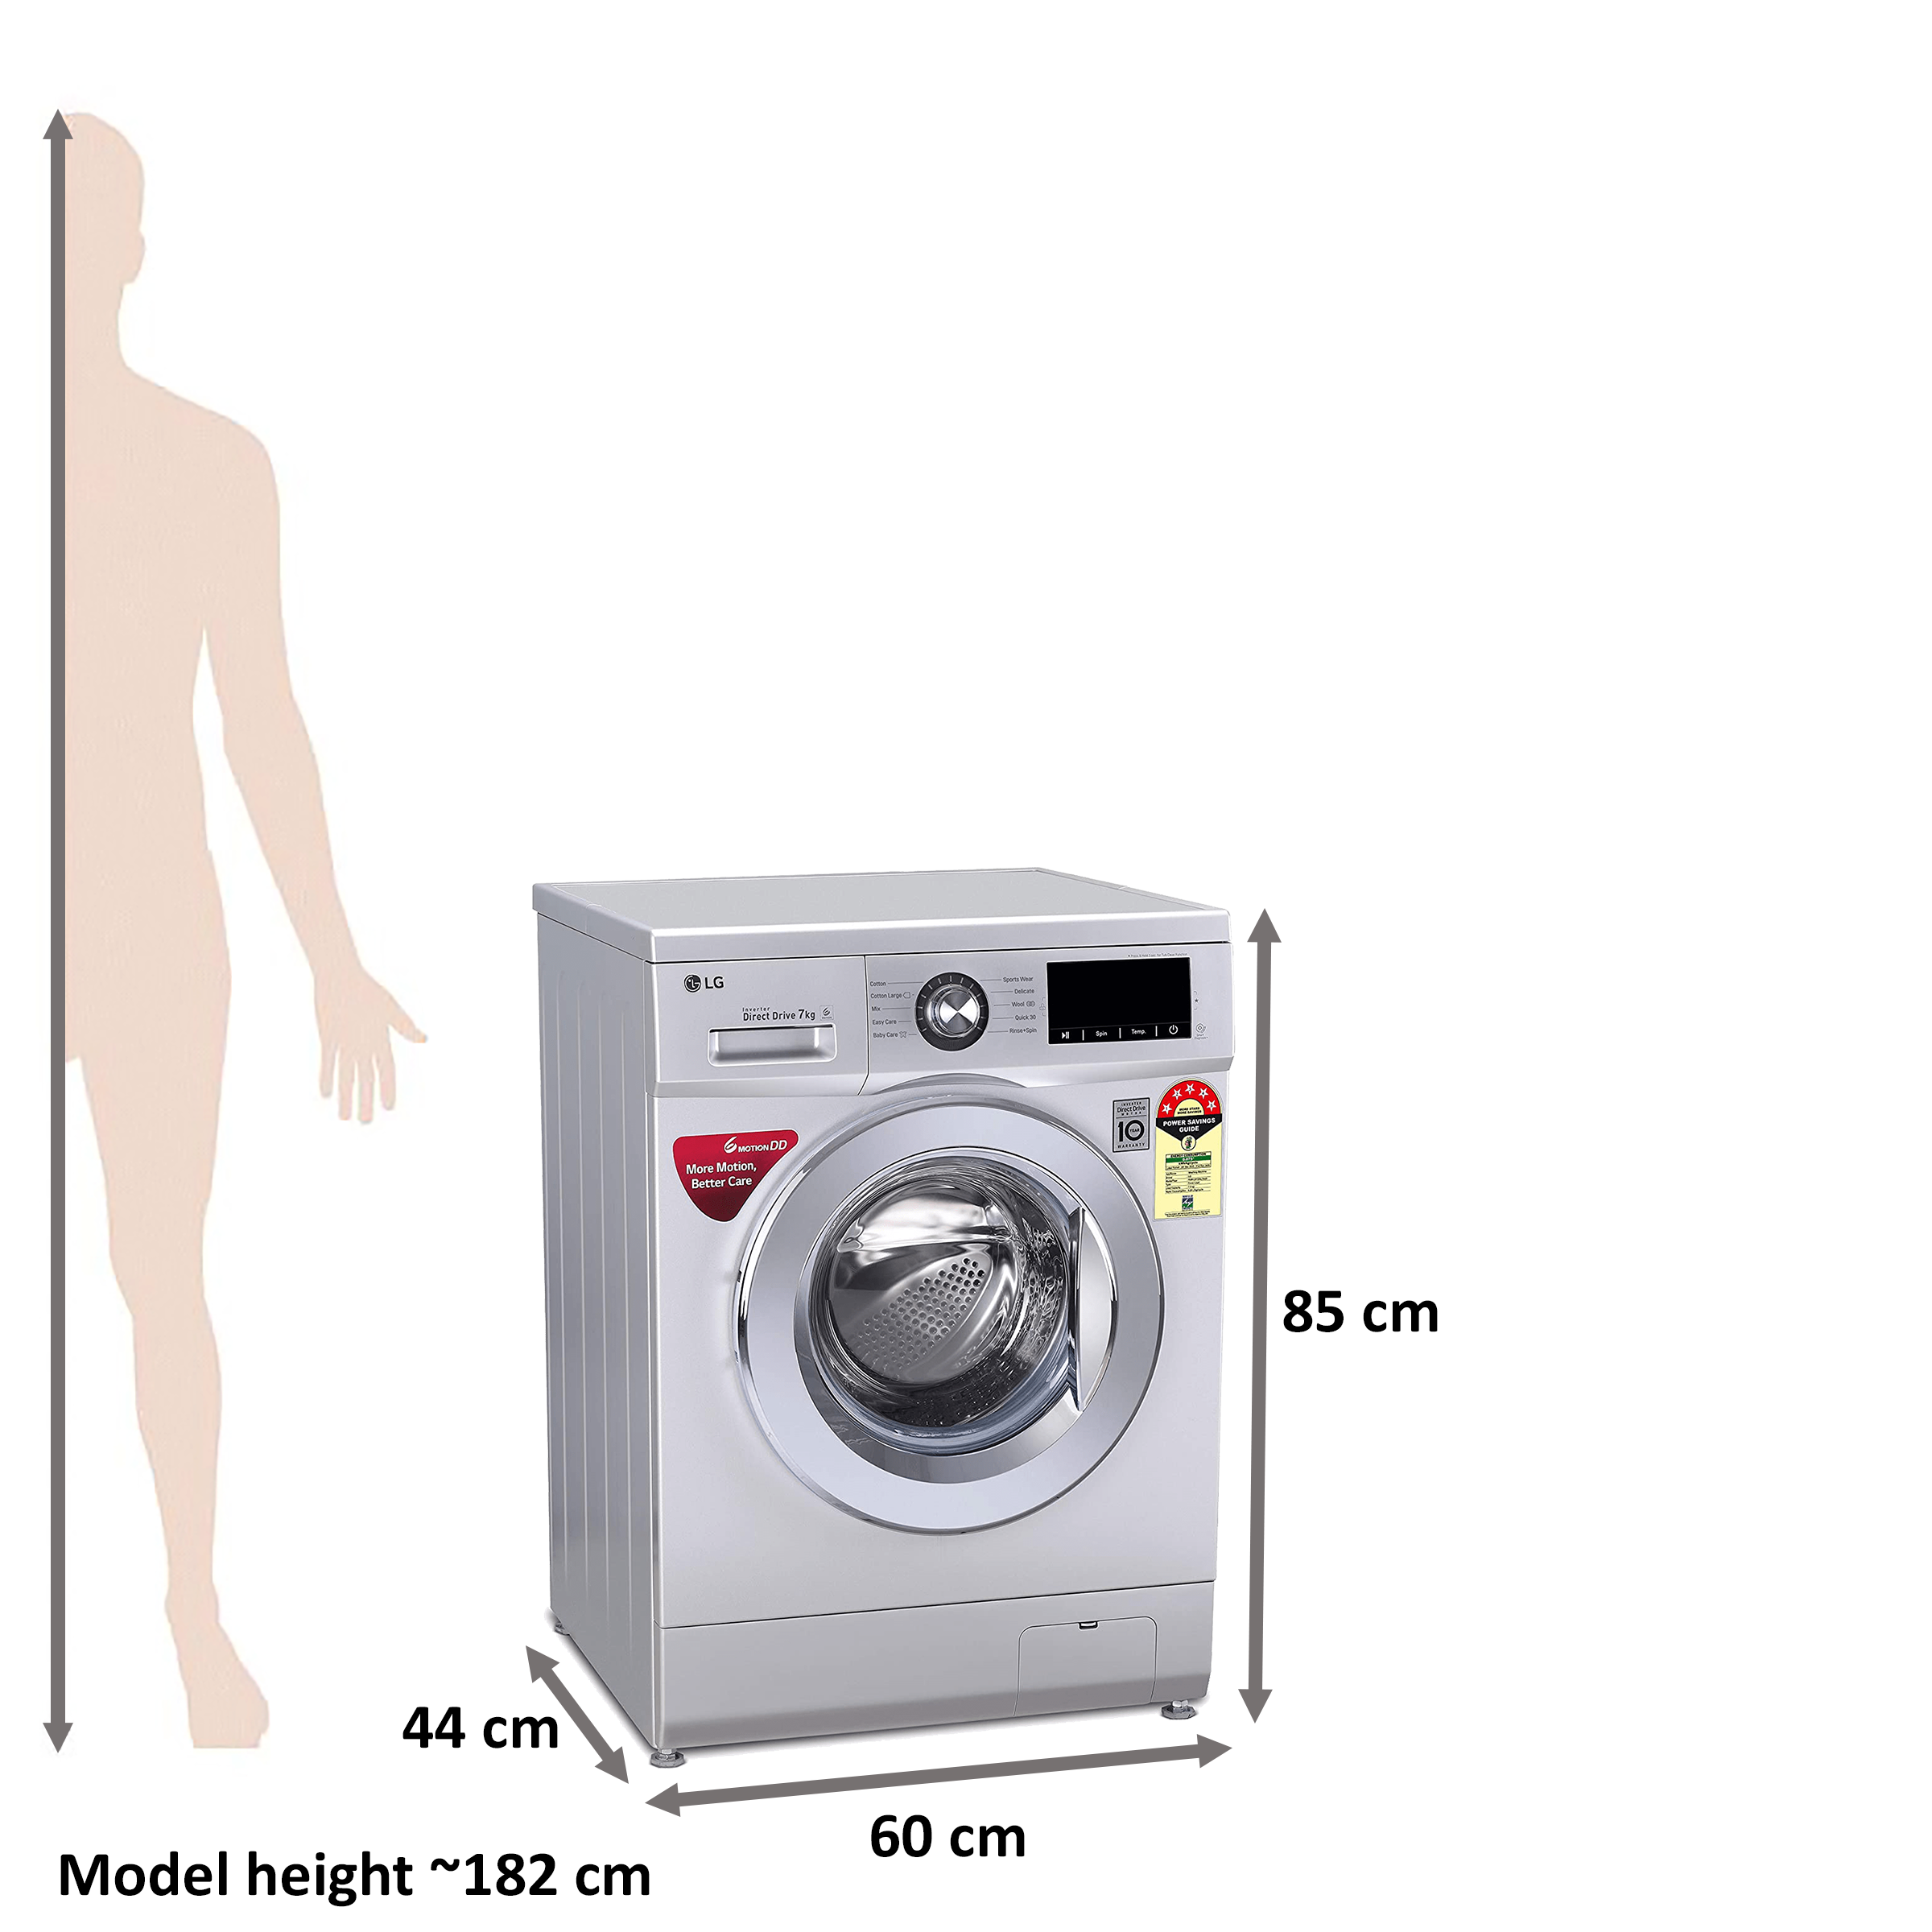 LG 7 kg 5 Star Fully Automatic Front Load Washing Machine (Smart Diagnosis, FHM1207ZDL.ALSQEIL, Luxury Silver) 2